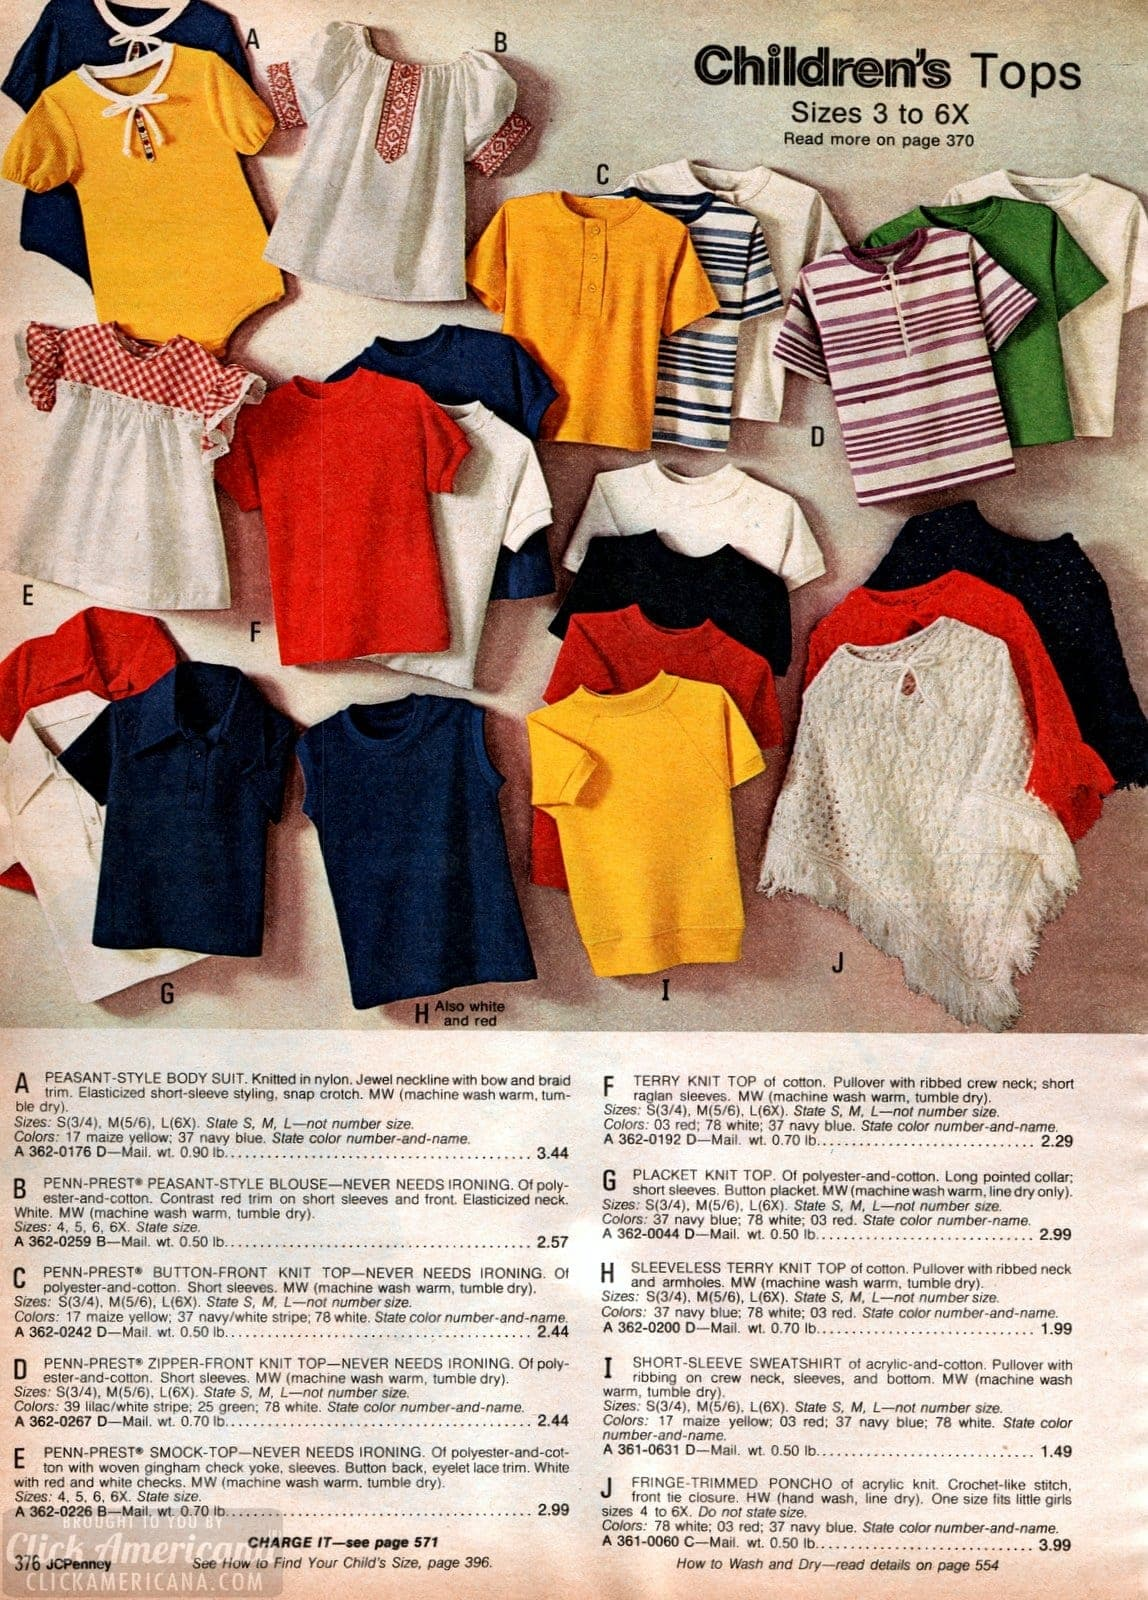 Seventies fashion for girls - Zipper-front knit tops and fringe-trimmed ponchos